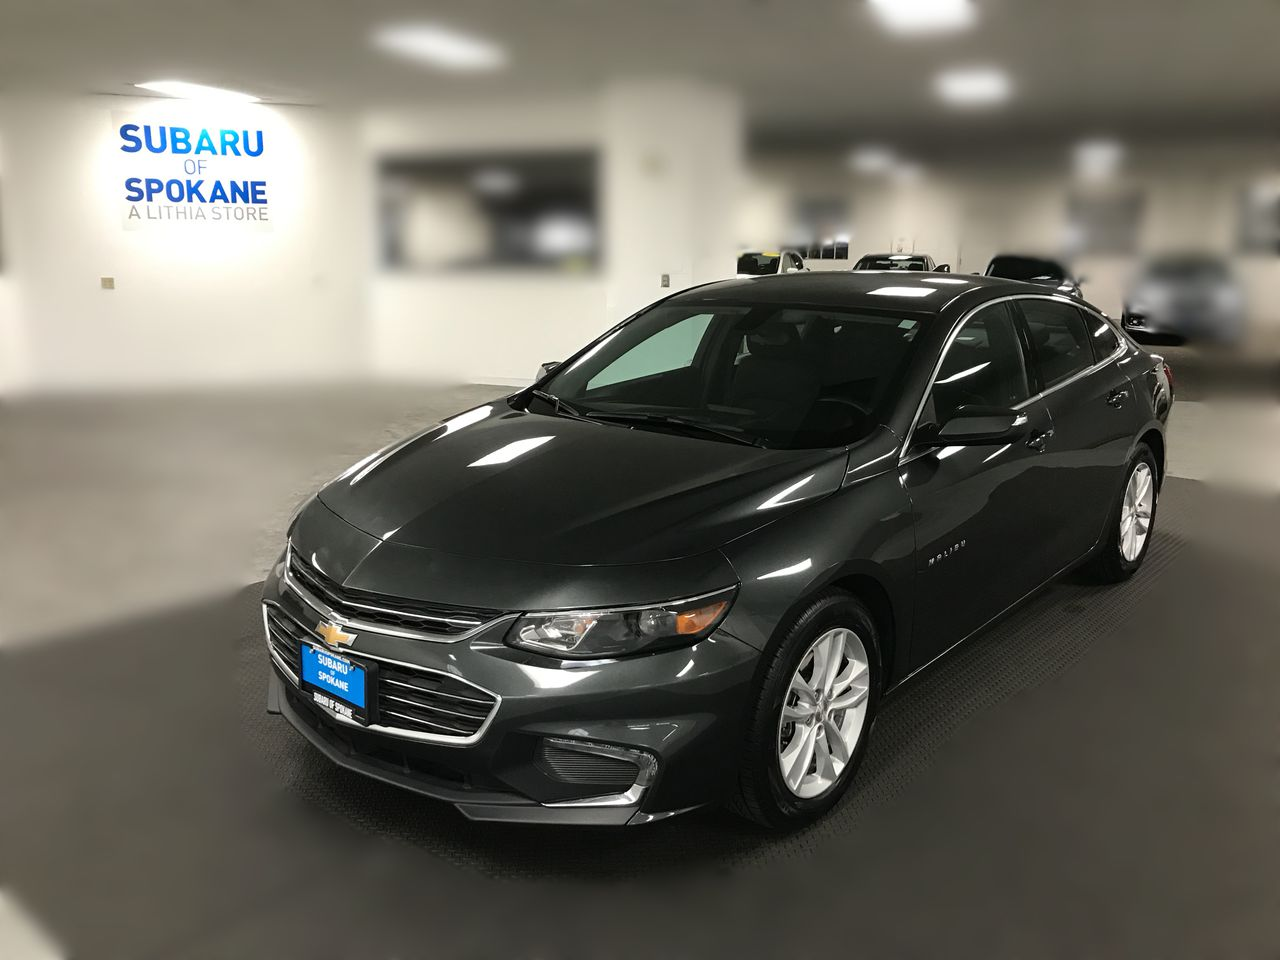 featured used cars for sale in spokane used subaru dealer serving cheney. Black Bedroom Furniture Sets. Home Design Ideas